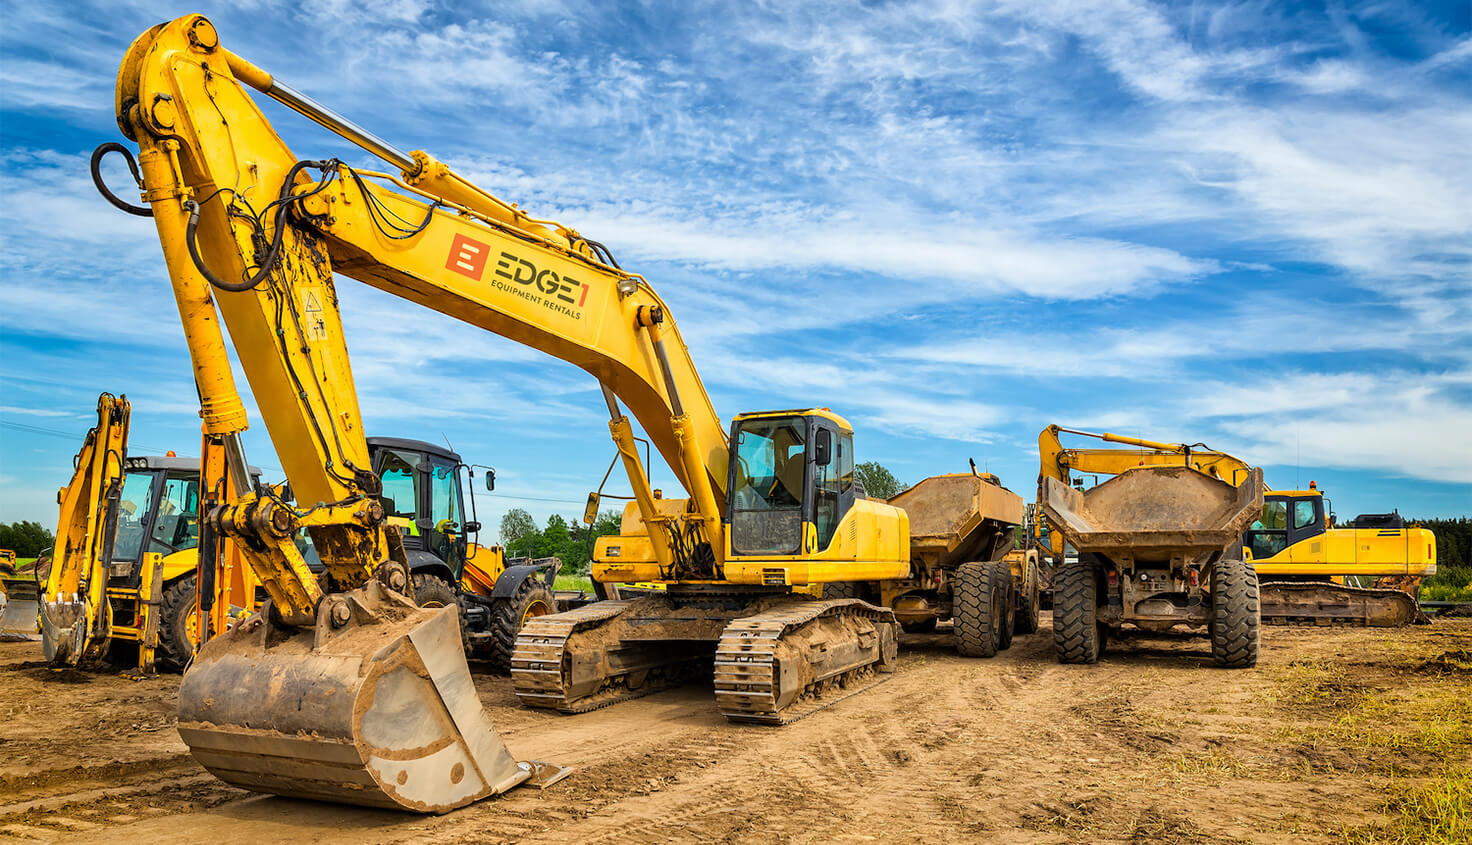 The Best Equipment for your Demolition Project